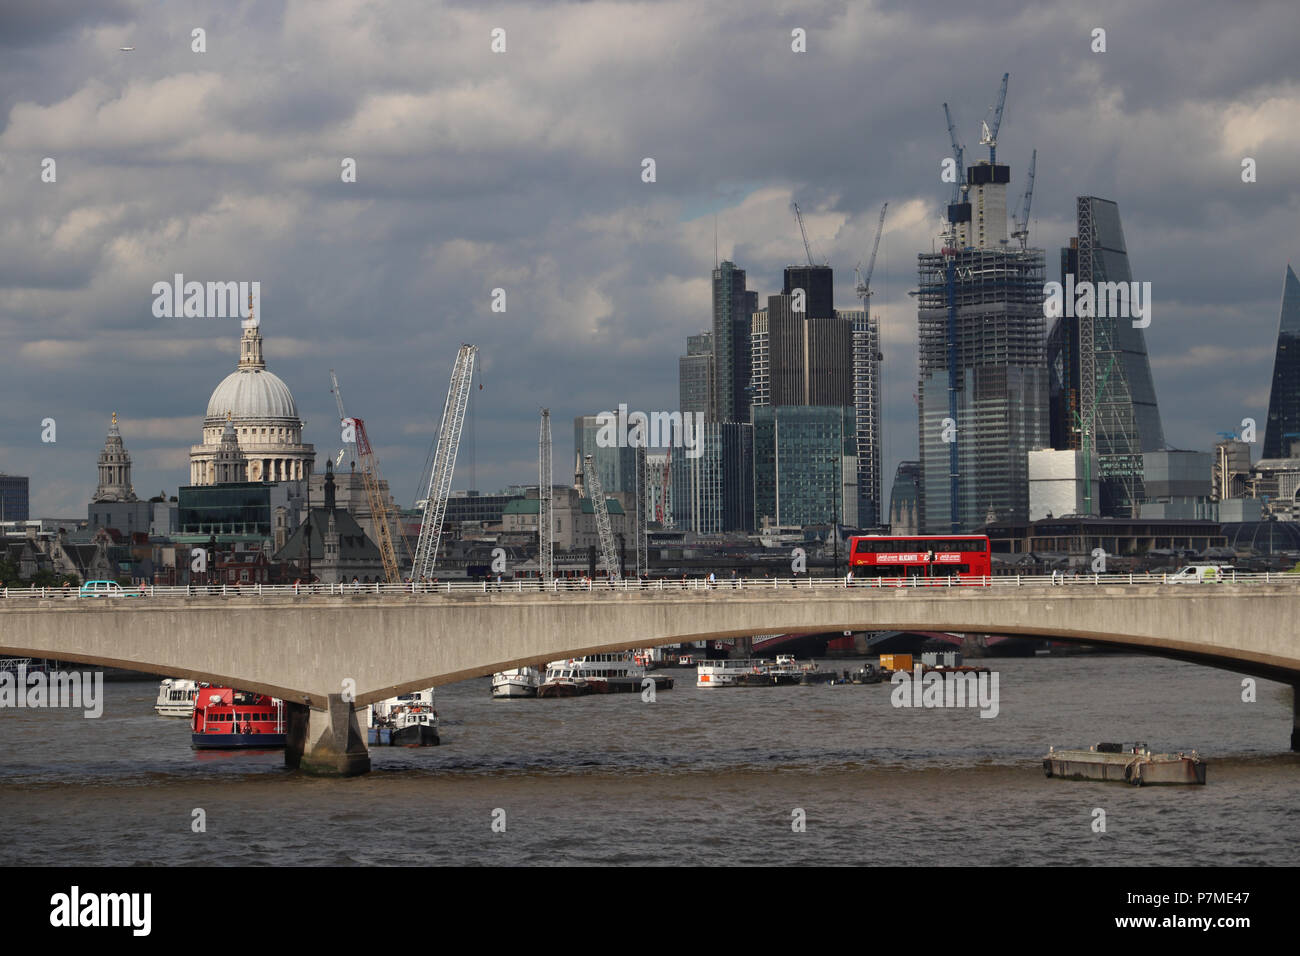 Panoramic view of London with red bus crossing the Waterloo Bridge  and St Paul's Cathedral sunlit, cluster of new skyscrapers in shadow of cloudy sky - Stock Image